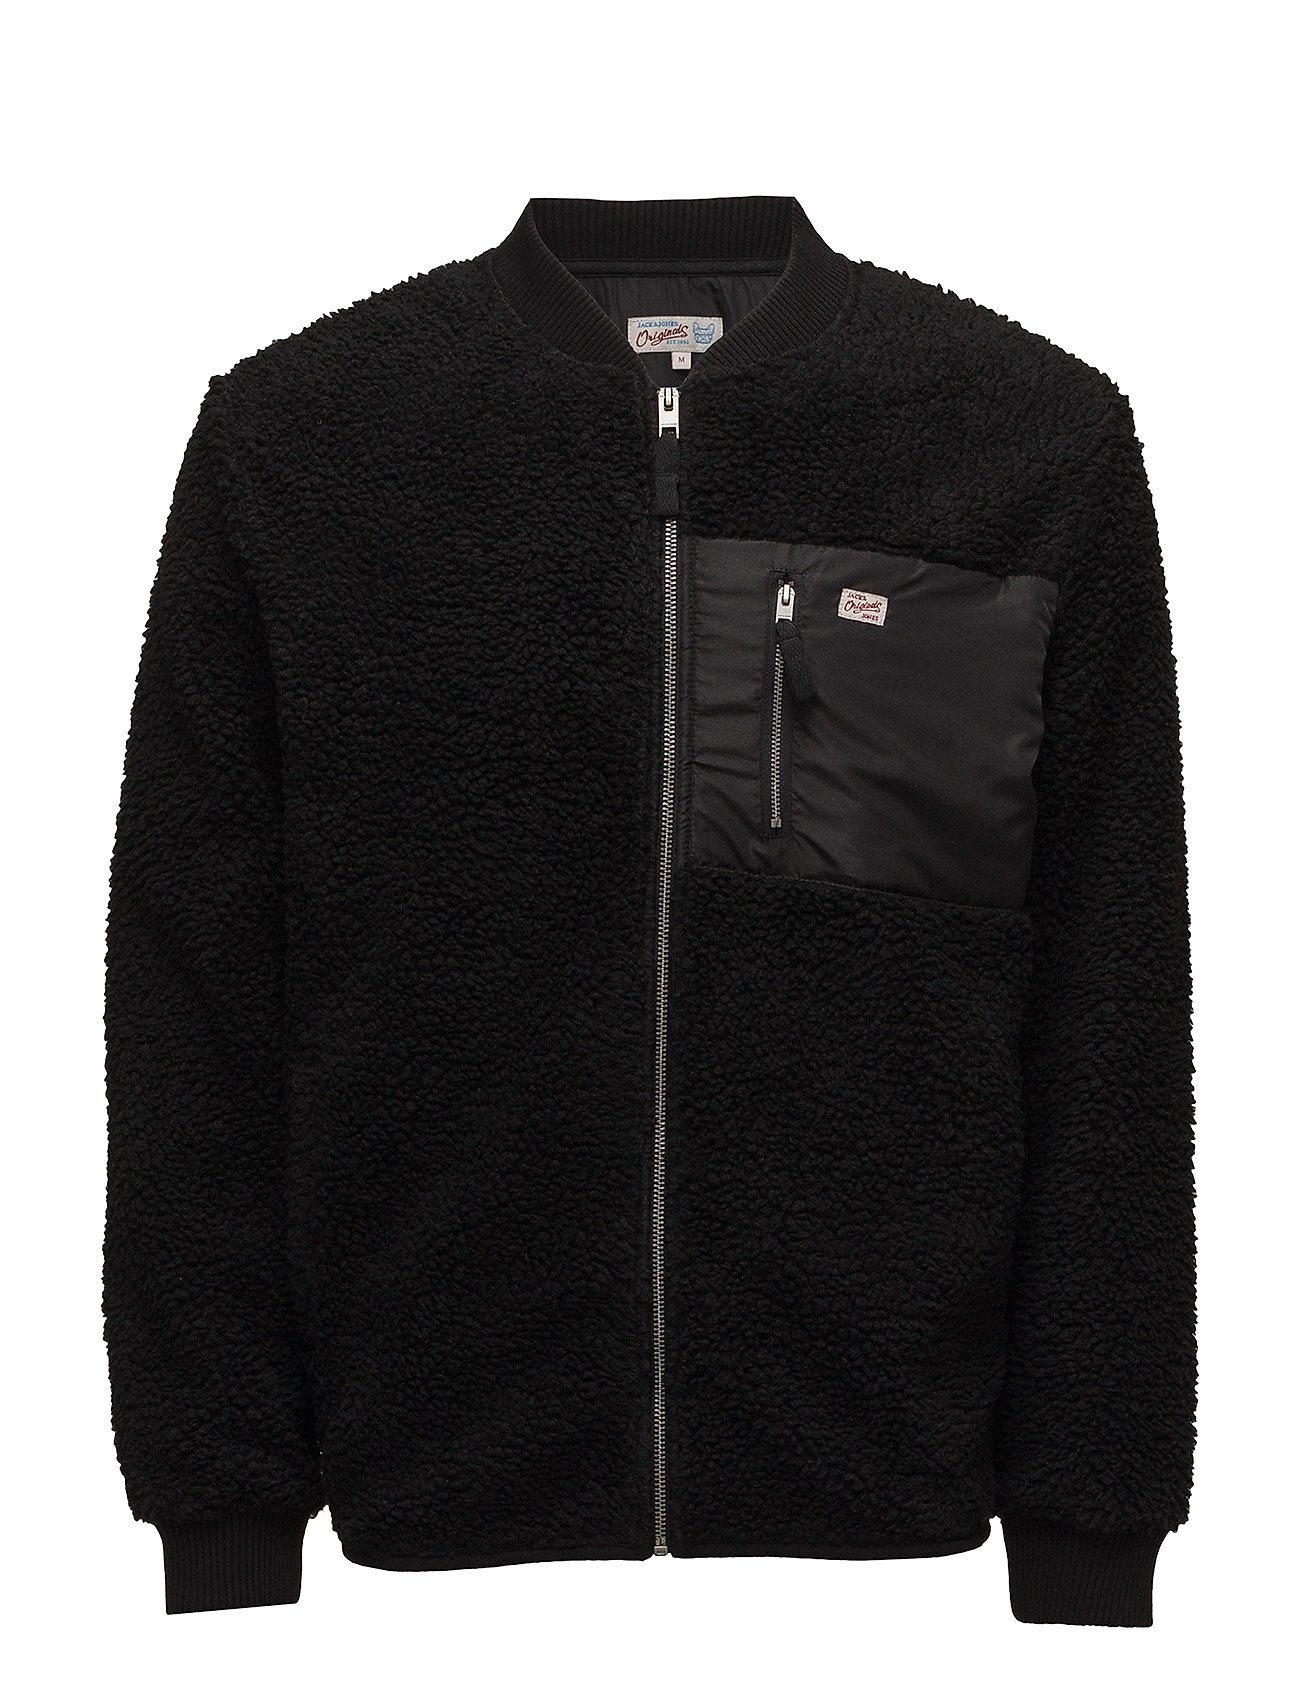 jack & jones original – Jorsnow sweat zip baseball på boozt.com dk